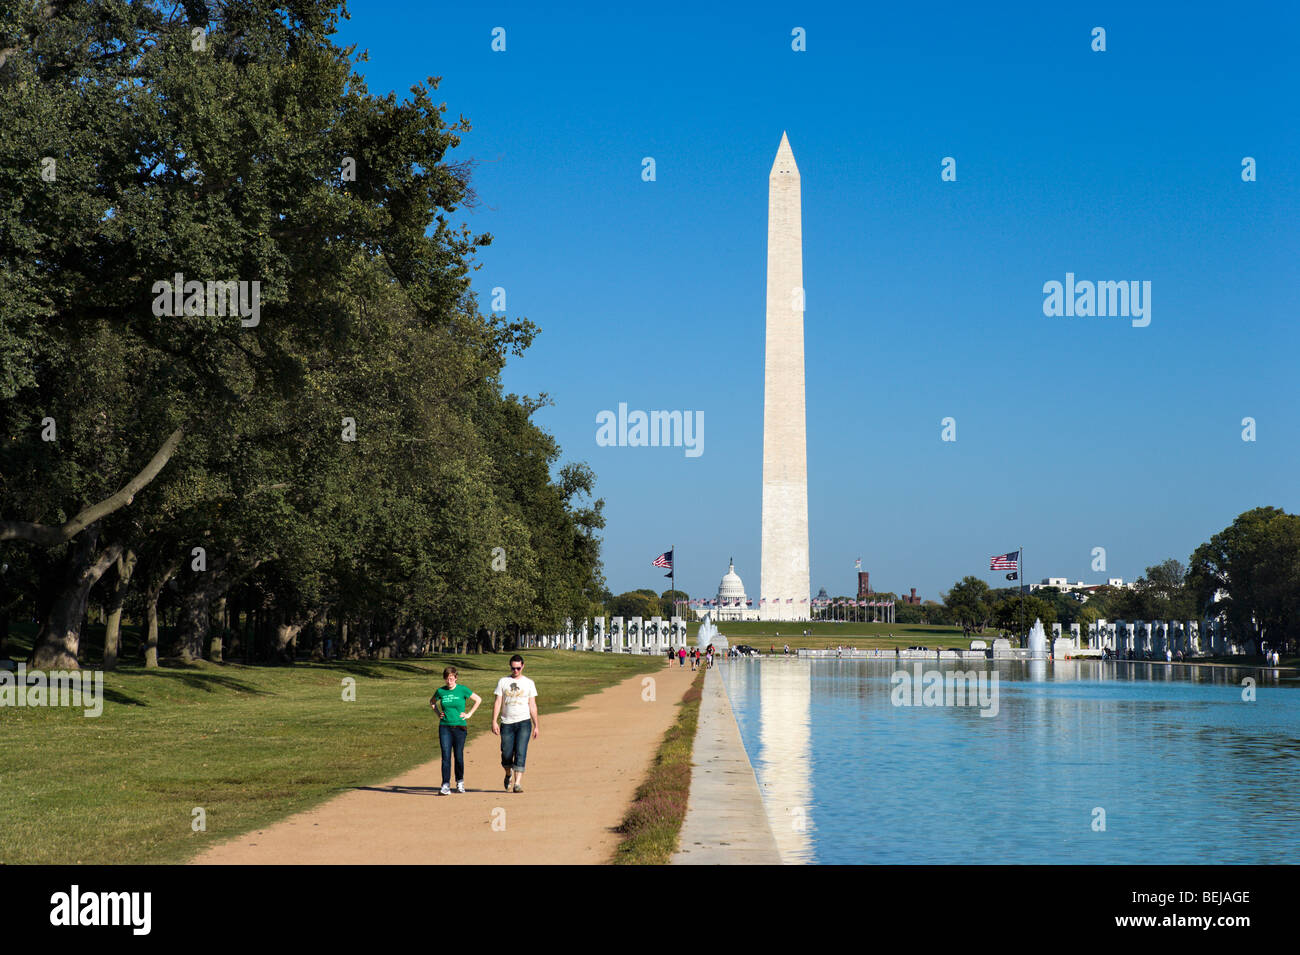 The Reflecting Pool with the Washington Monument and Capitol building behind, Washington DC, USA - Stock Image